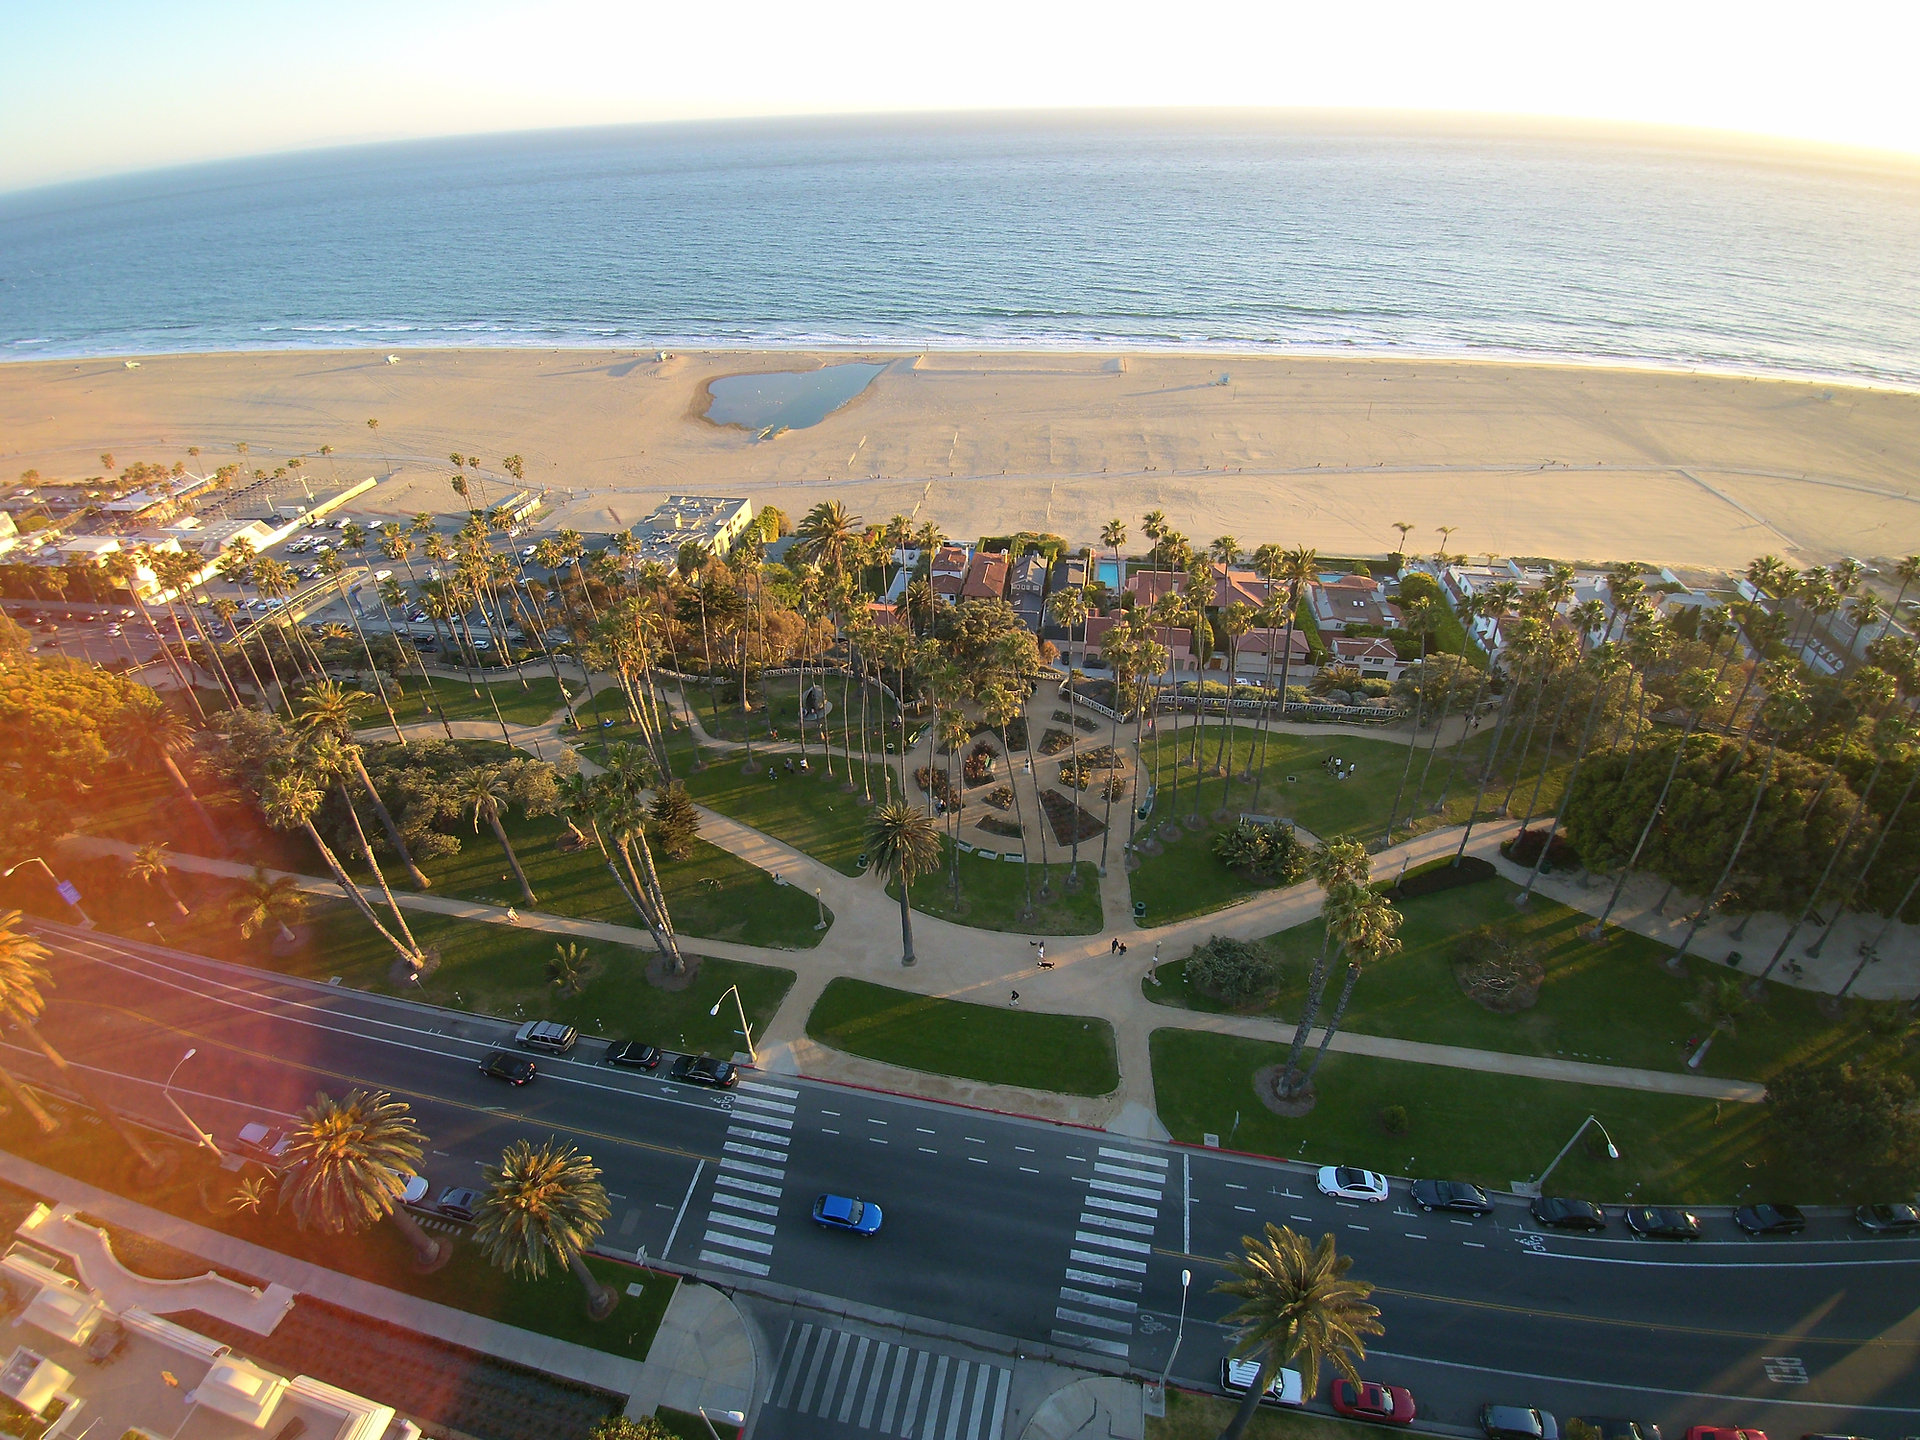 Photography,Video&Drone | Glendora area| G29Photography.com ... on crop spraying drones, land survey drones, field mapping drones, geographic information systems drones, multirotor drones,